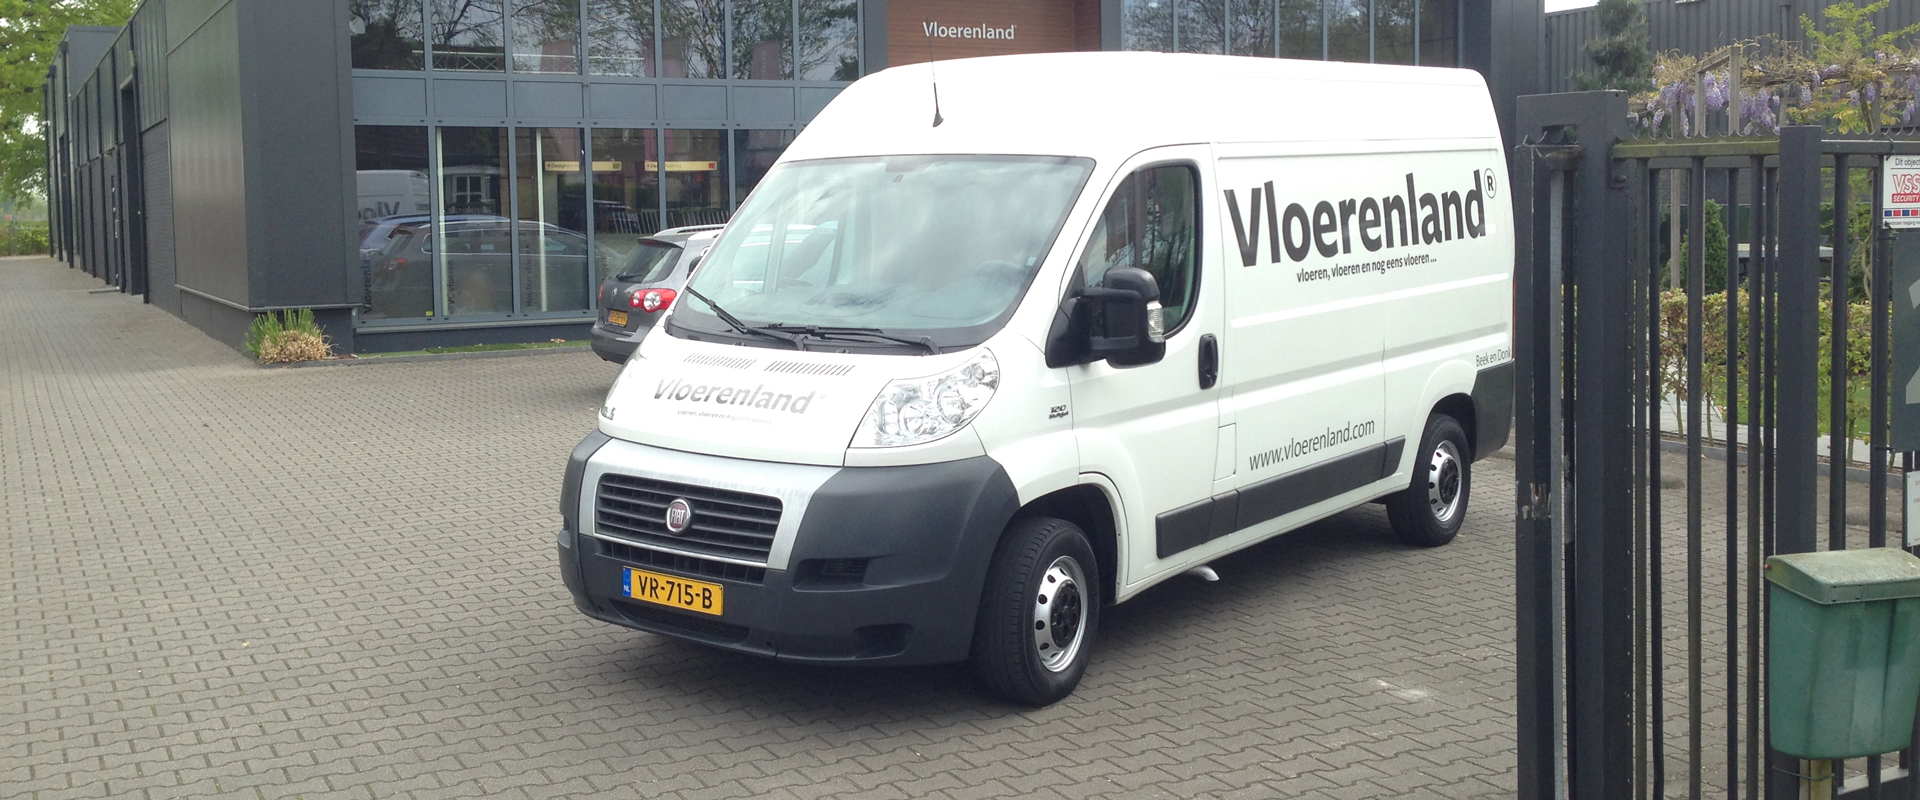 Vloerenland transport